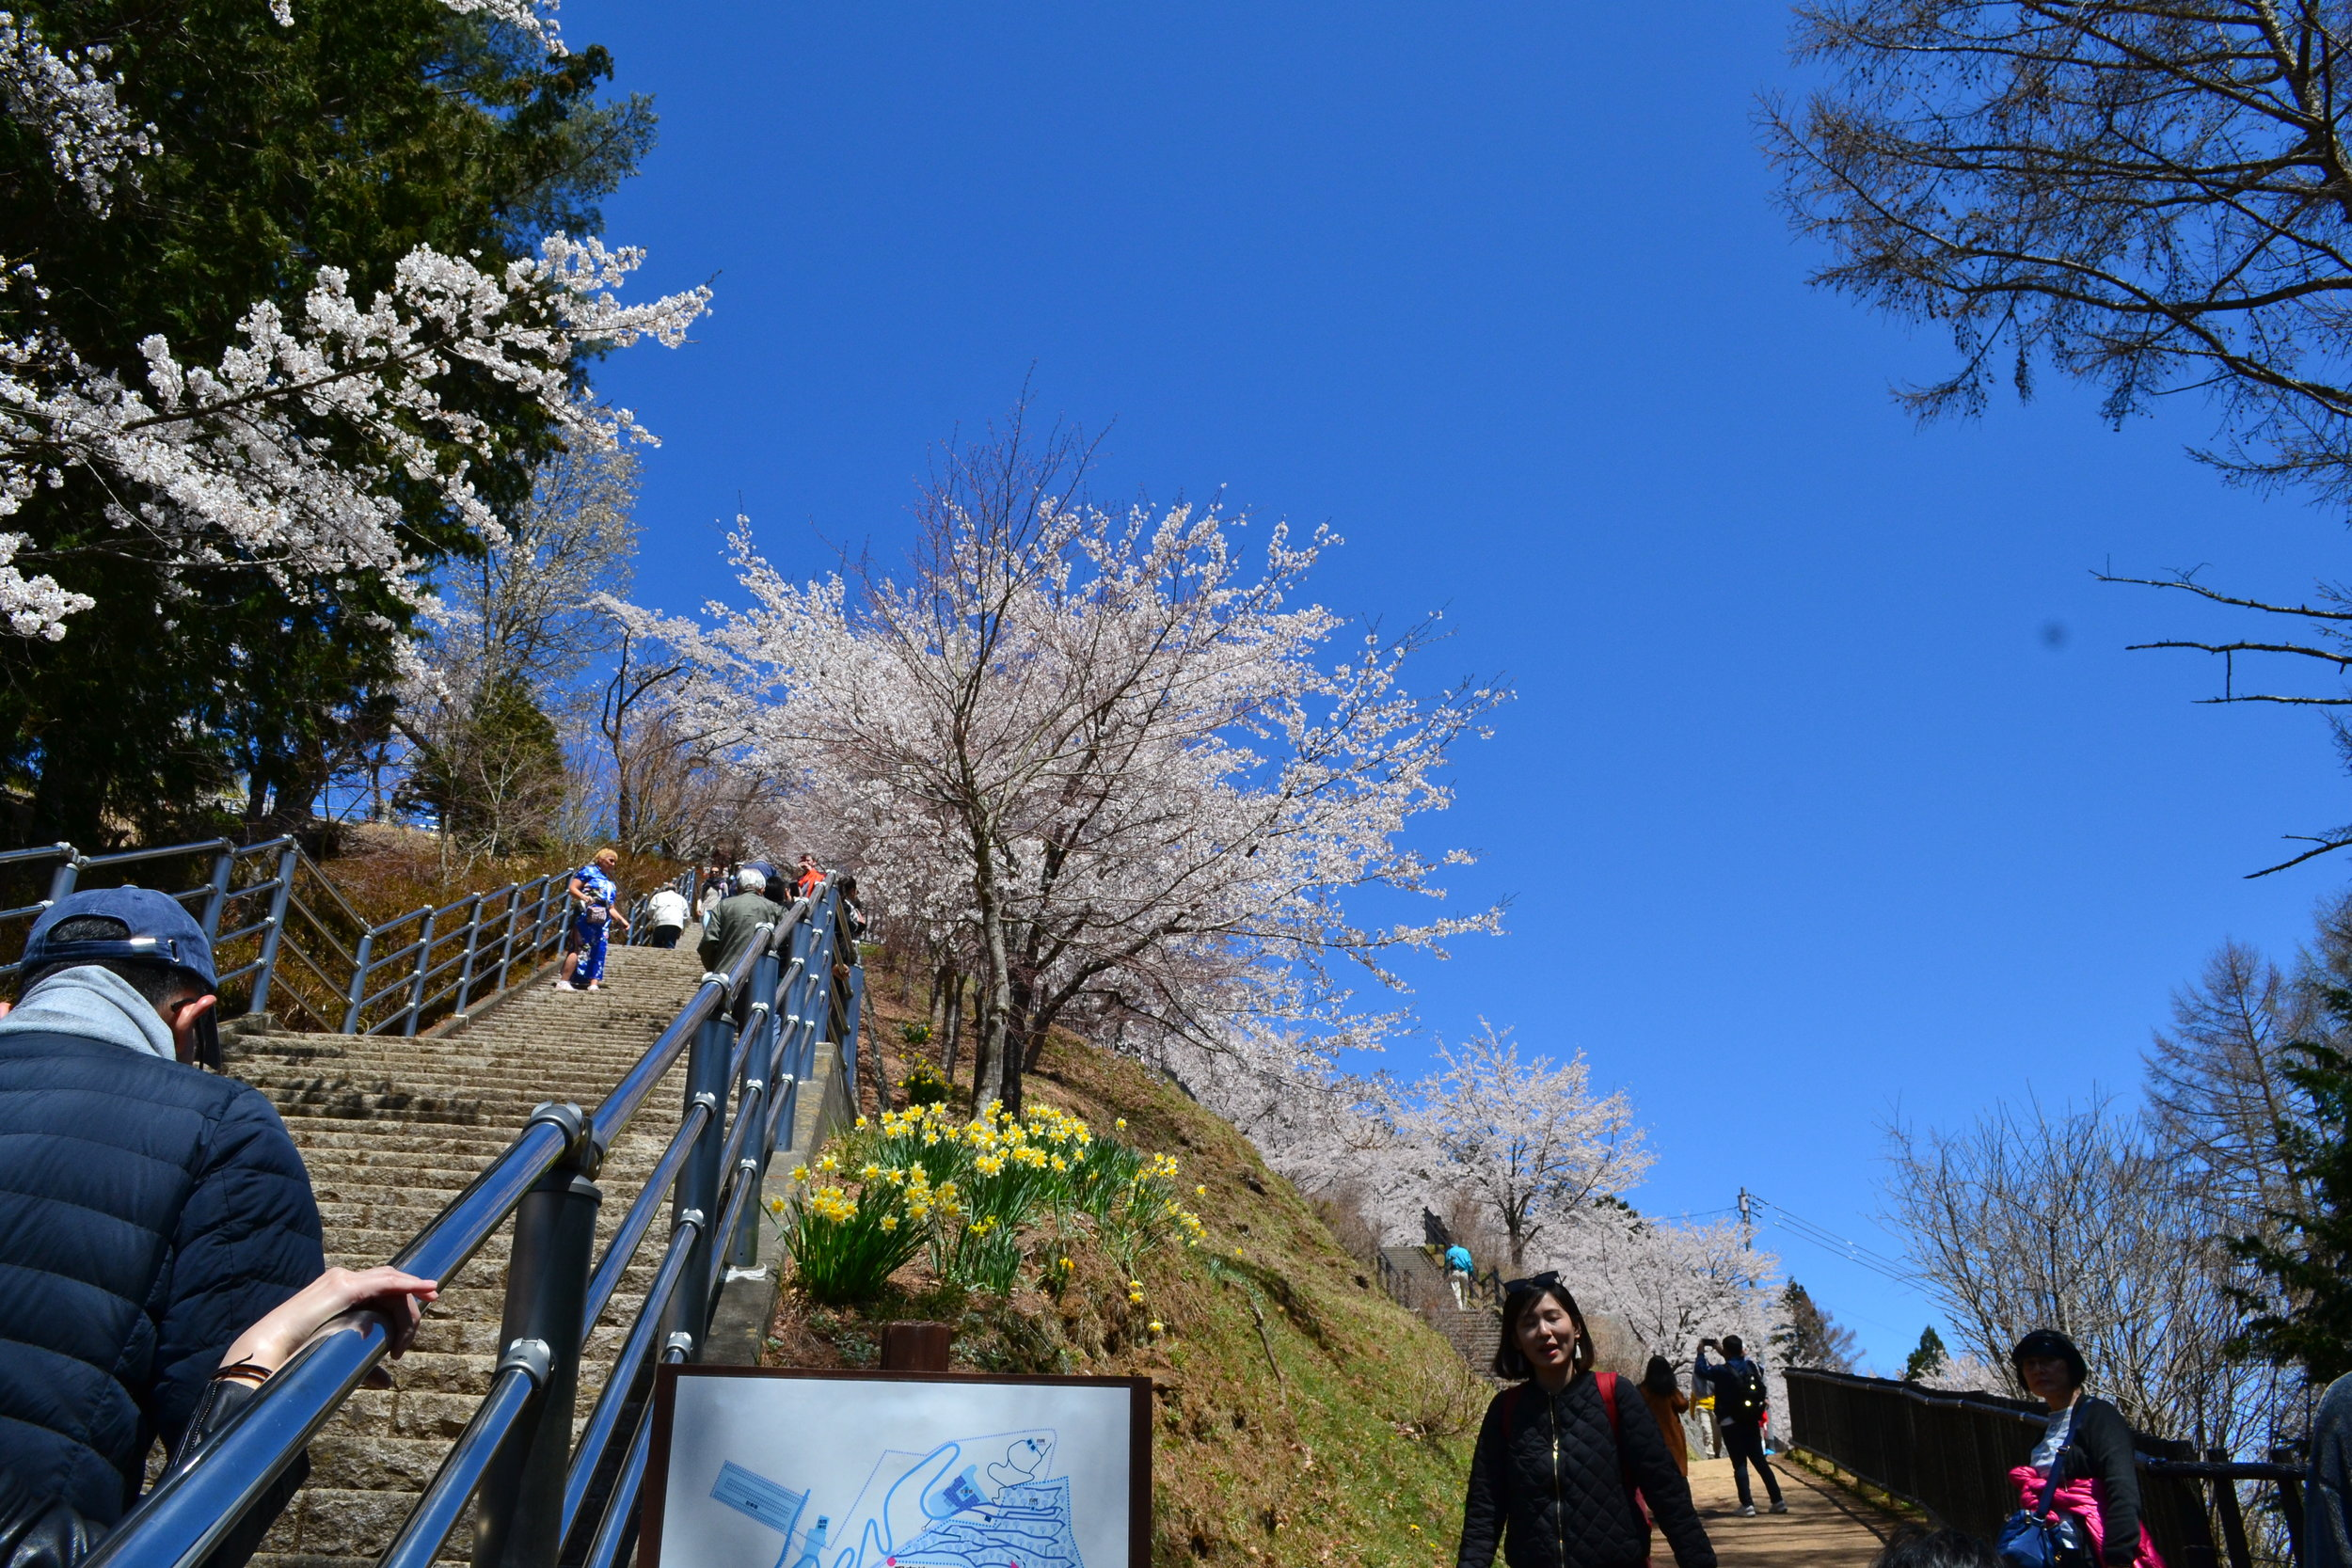 Some of the hike up to the Pagoda. There is a stairway and a more curved trail you can choose to get up to the Pagoda. The stairs are quite steep so I had to take a break one or twice to reach the top. The trail is much easier and is completely lined with cherry blossoms, so I decided to take that route downhill.